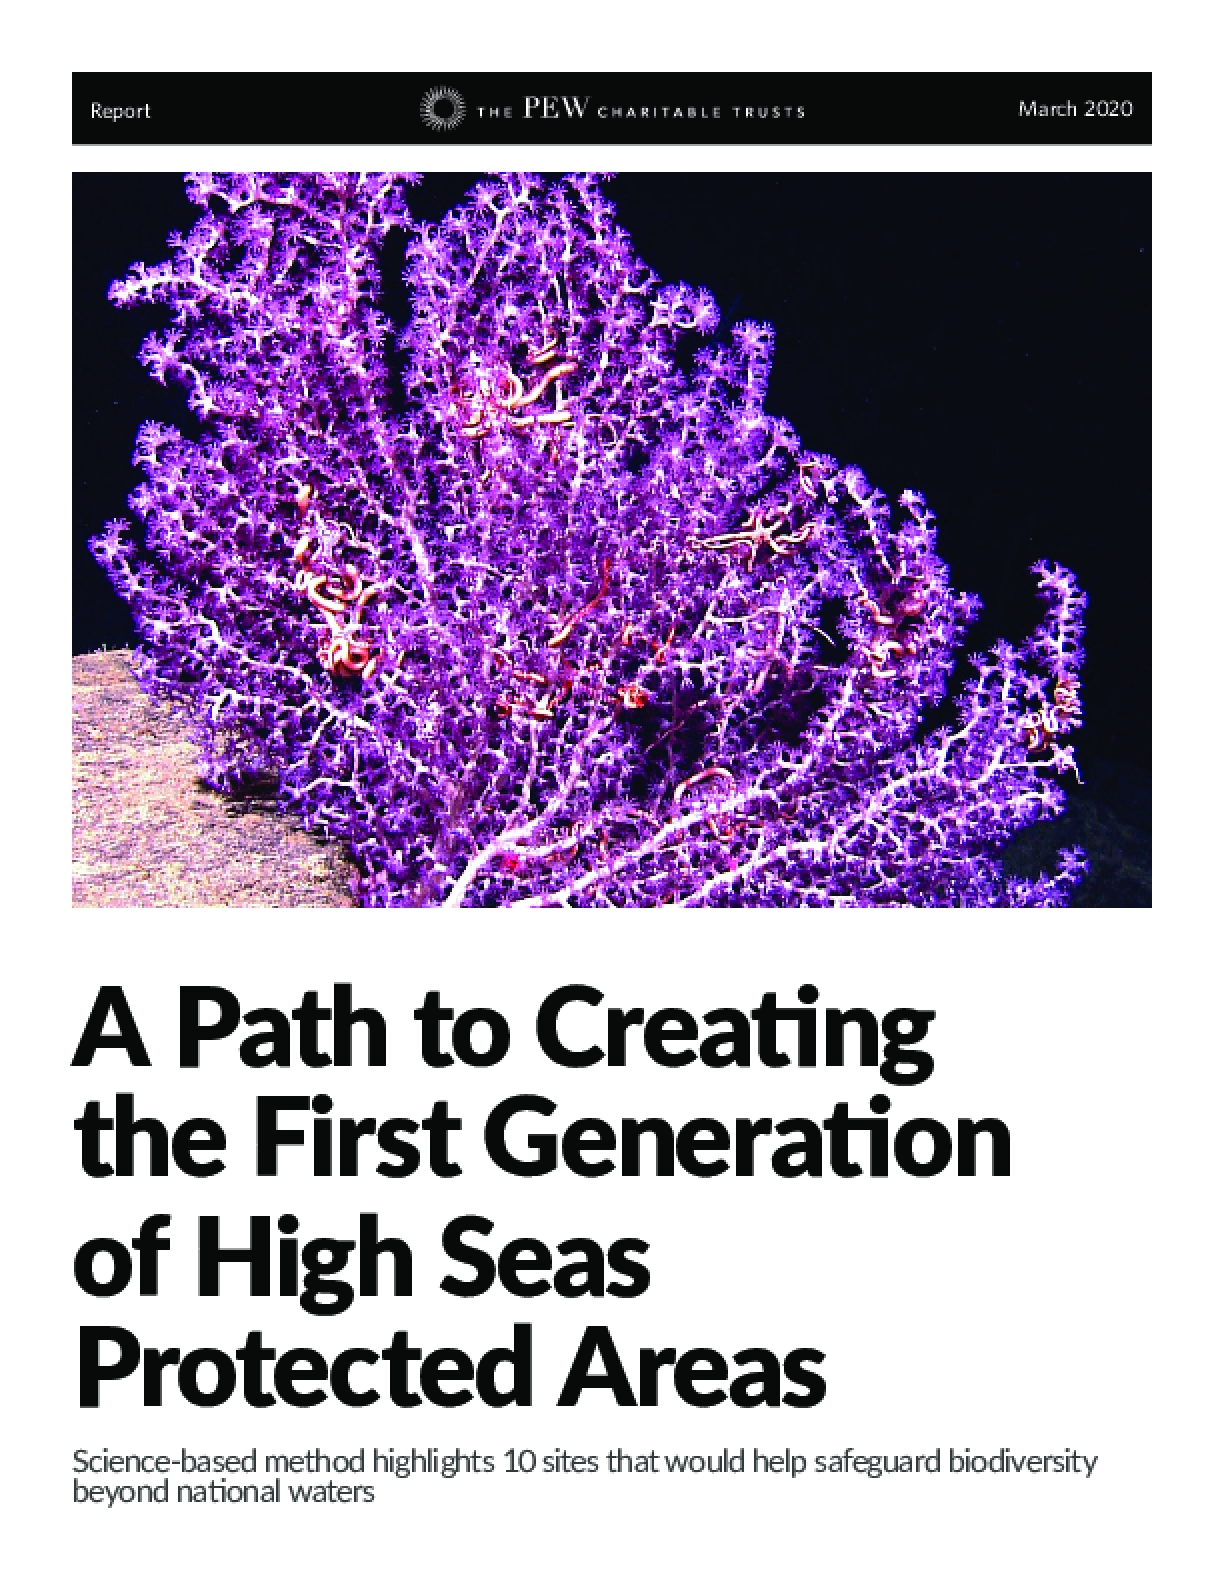 A Path to Creating the First Generation of High Seas Protected Areas